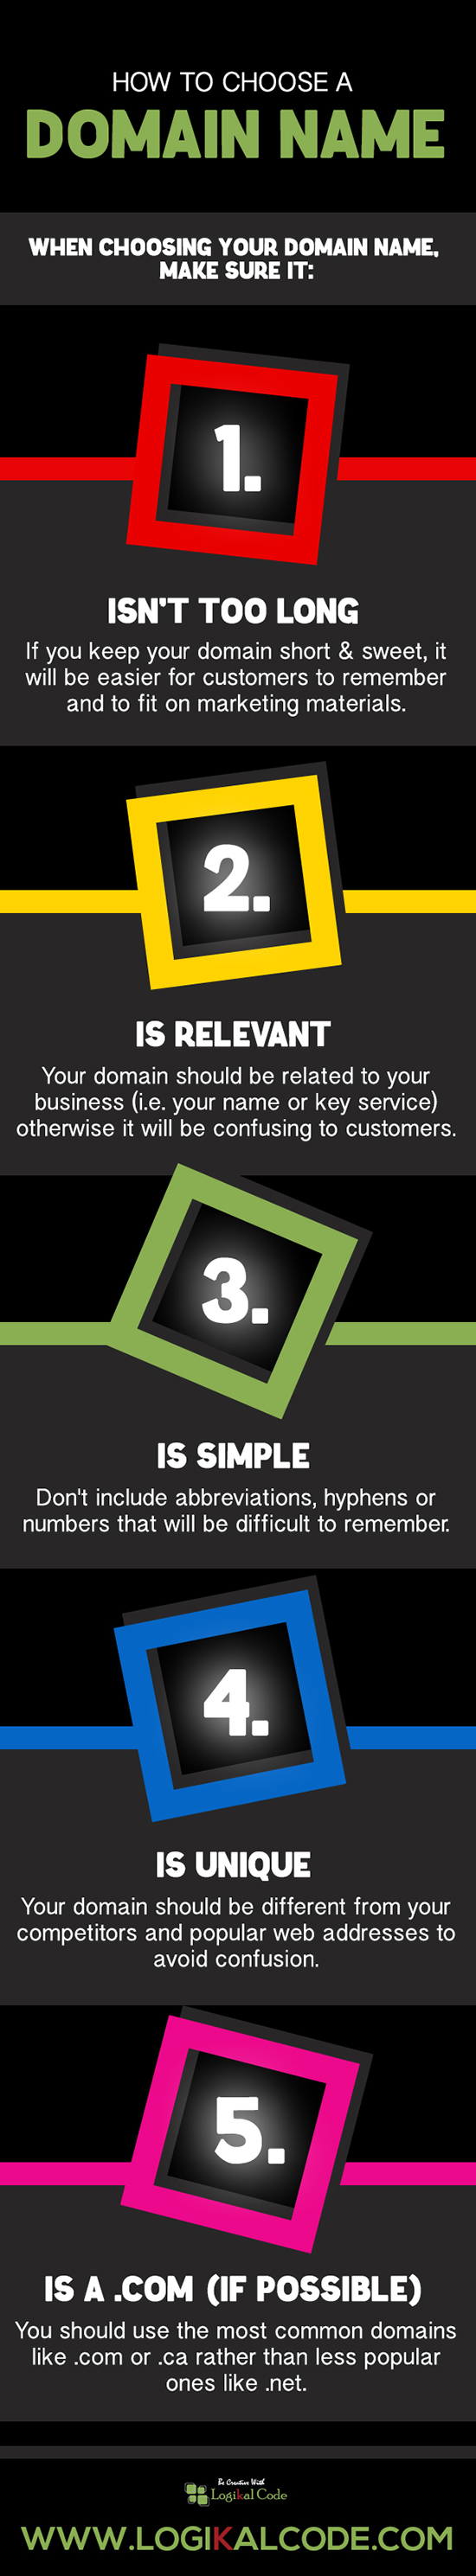 domain-name-tips